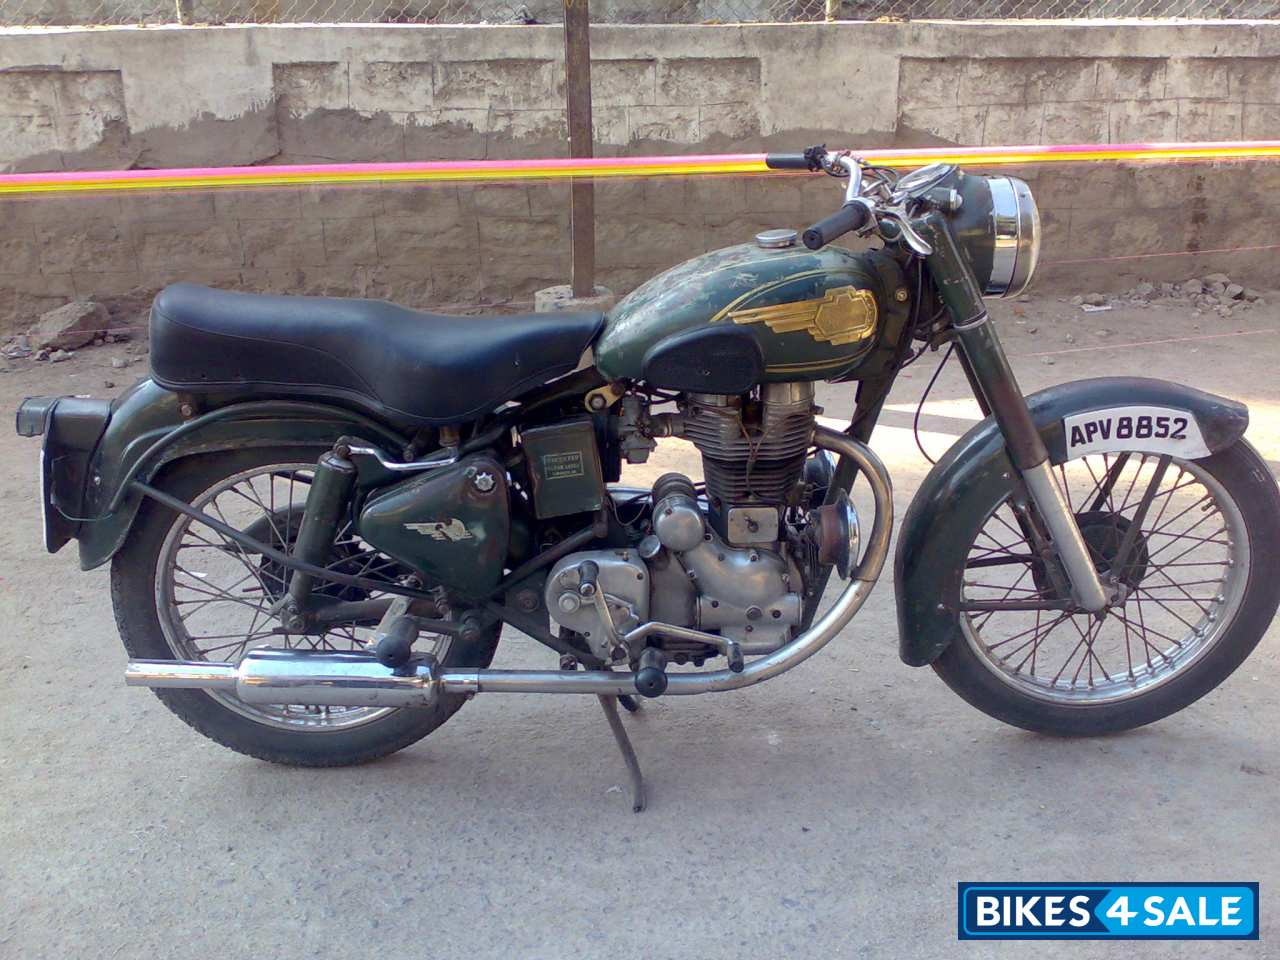 Used 1974 Model Royal Enfield Bullet Standard 350 For Sale In Hyderabad Id 41640 Military Green Colour Bikes4sale